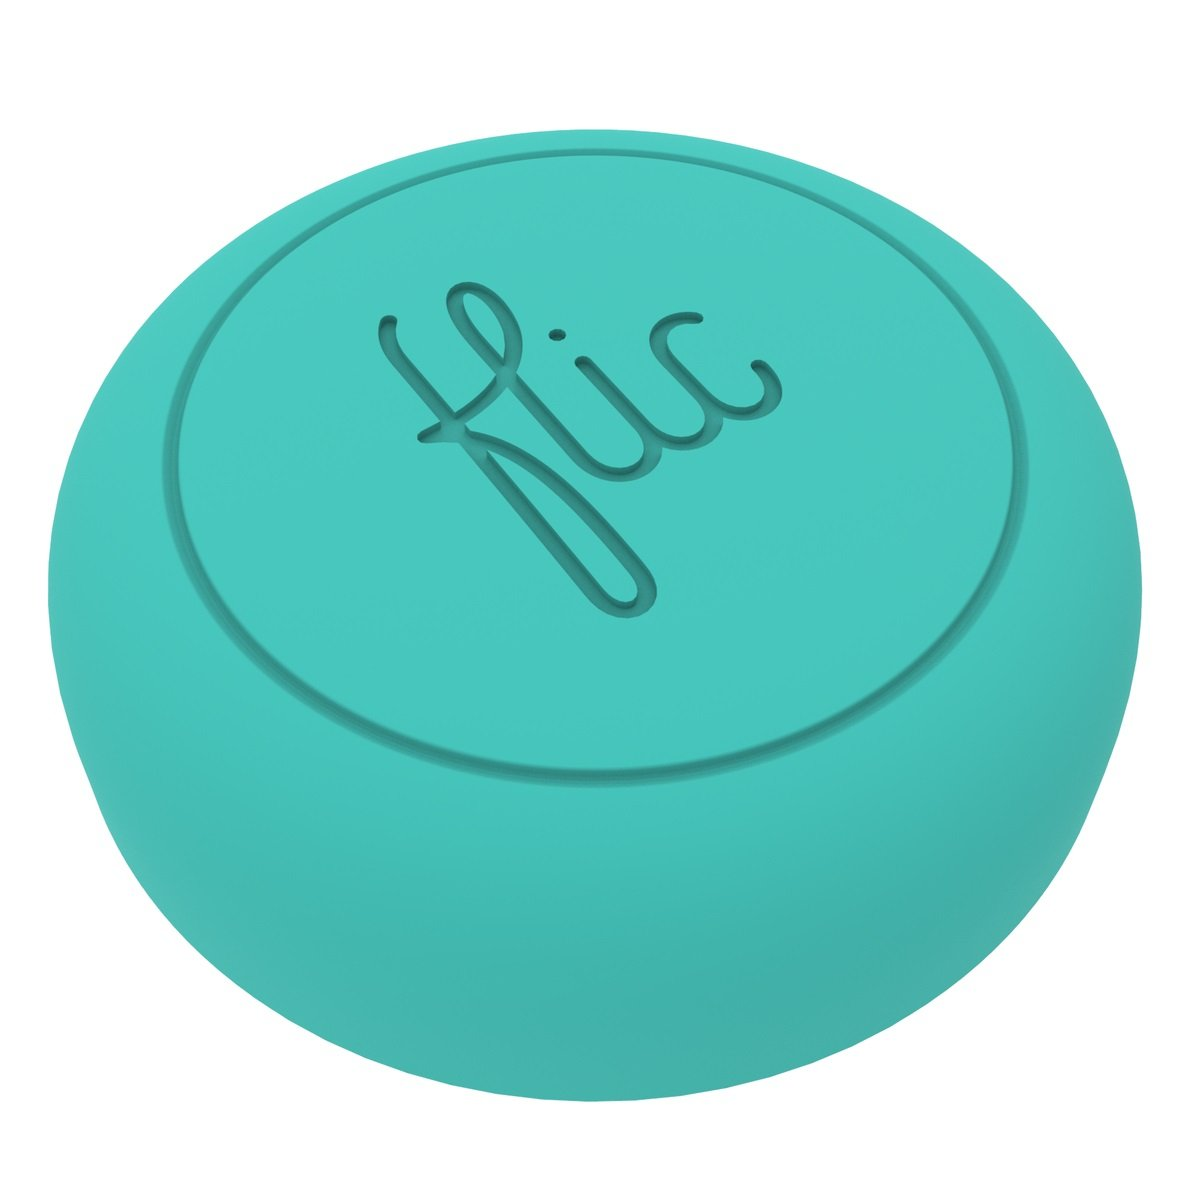 Flic Smart Button Review